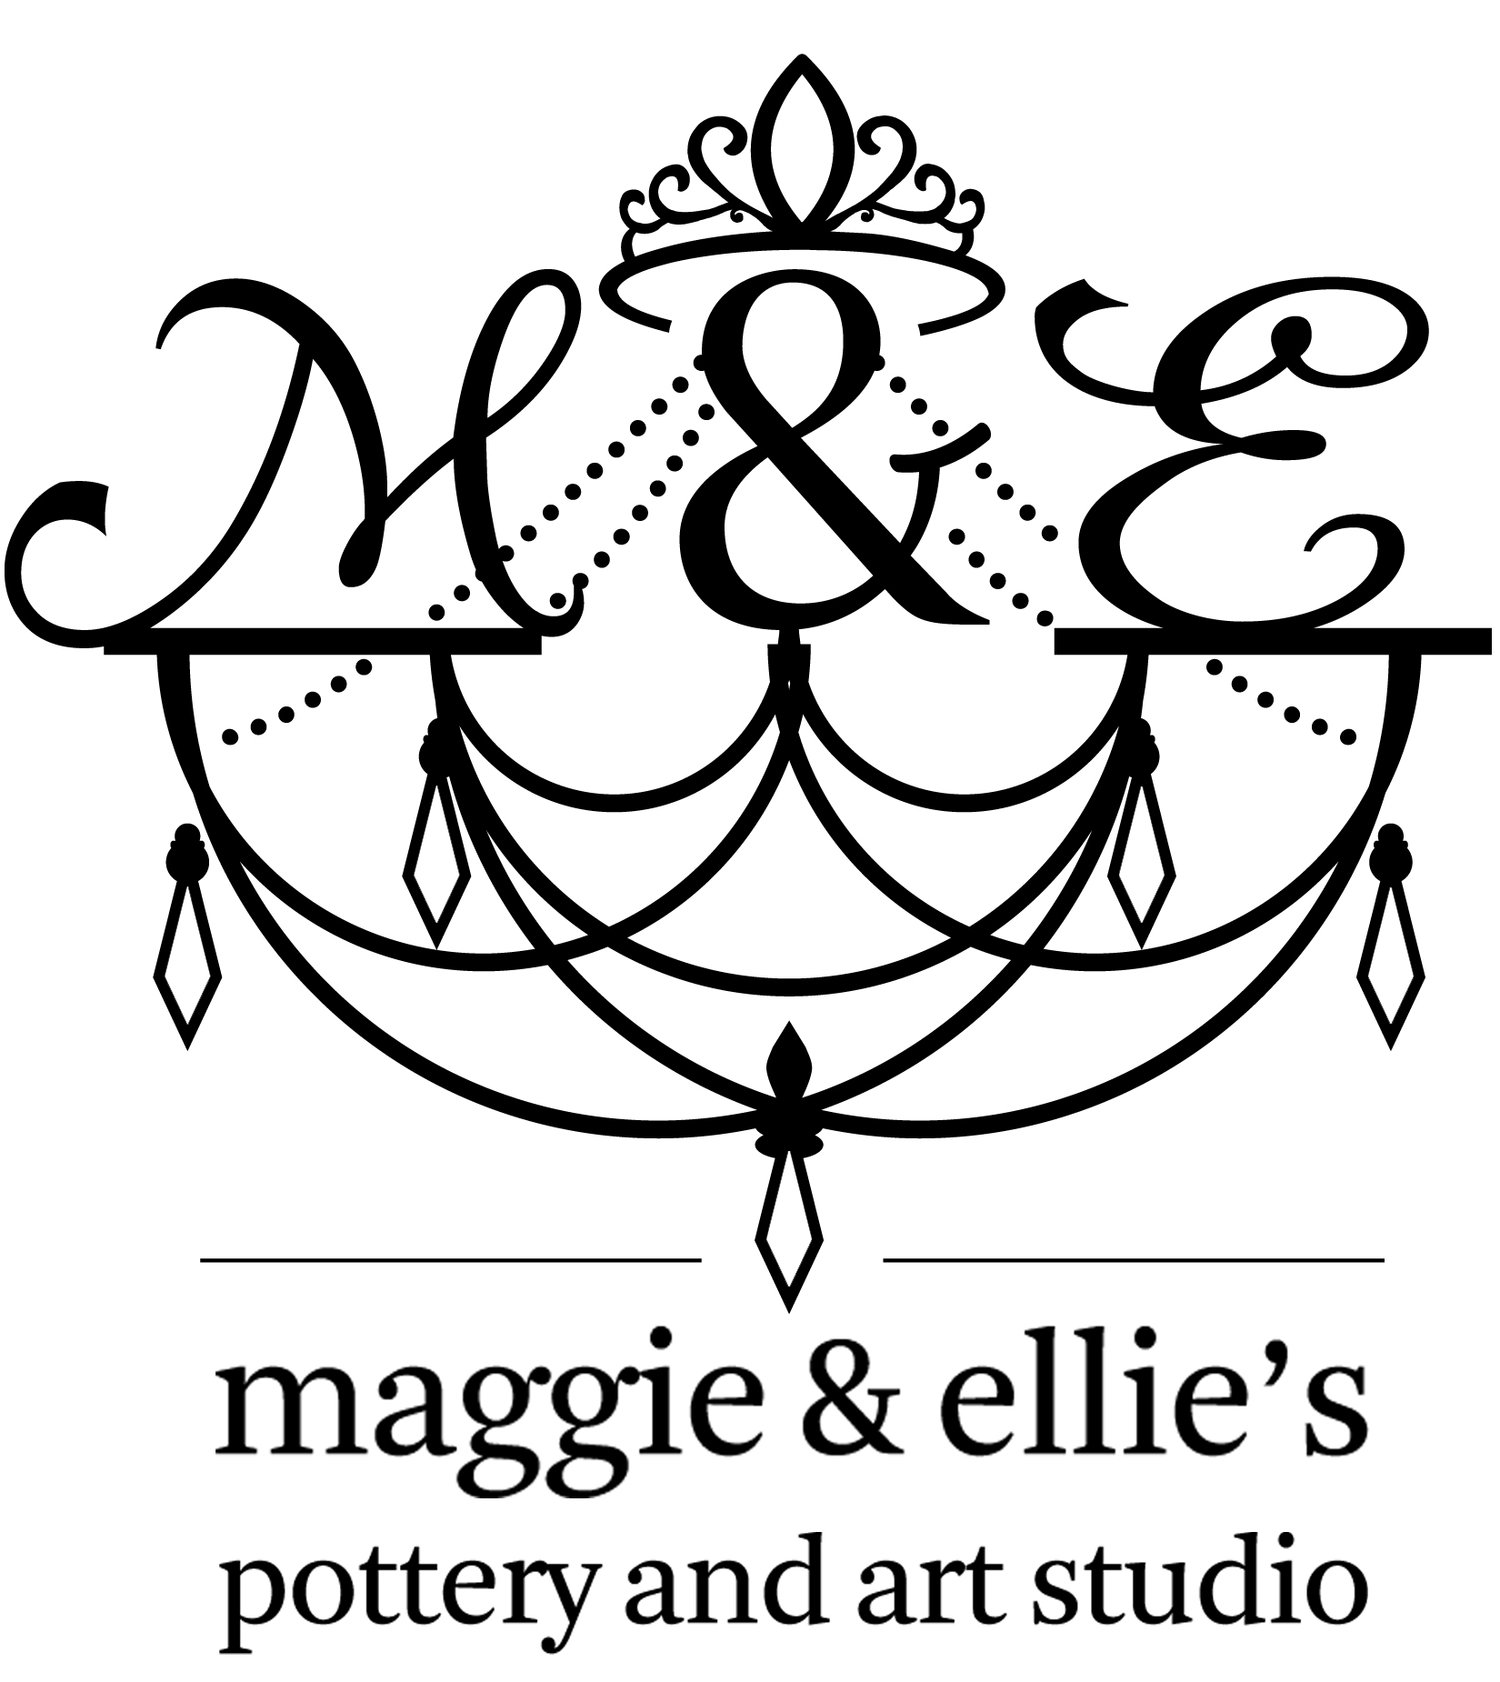 Maggie & Ellie's Pottery and Art Studio